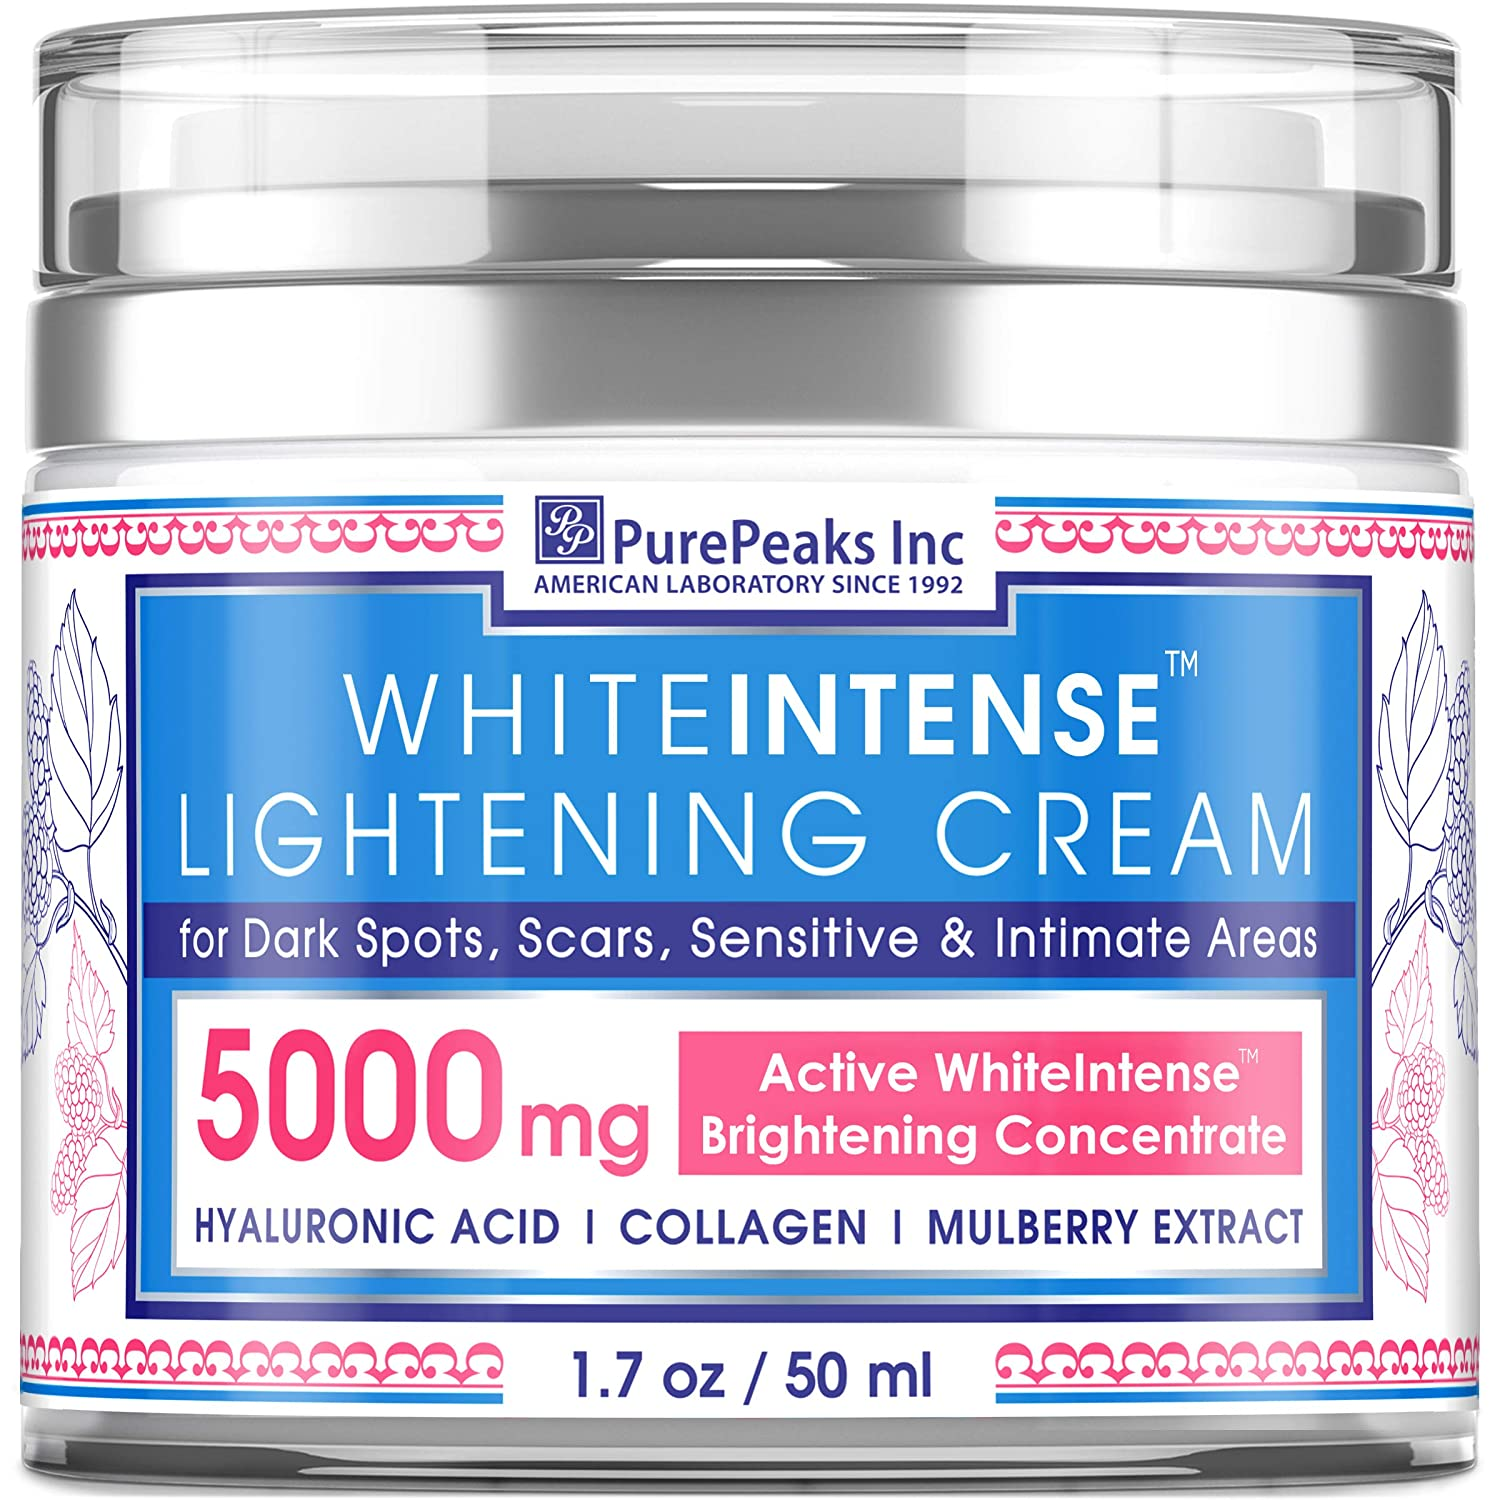 Dark Spot Corrector Cream for Face and Sensitive Skin - Made in USA - Skin Lightening Cream Infused with Potent Natural Alpha Arbutin (Glycosylated Hydroquinone) + Hyaluronic Acid & Collagen - 1.7 oz